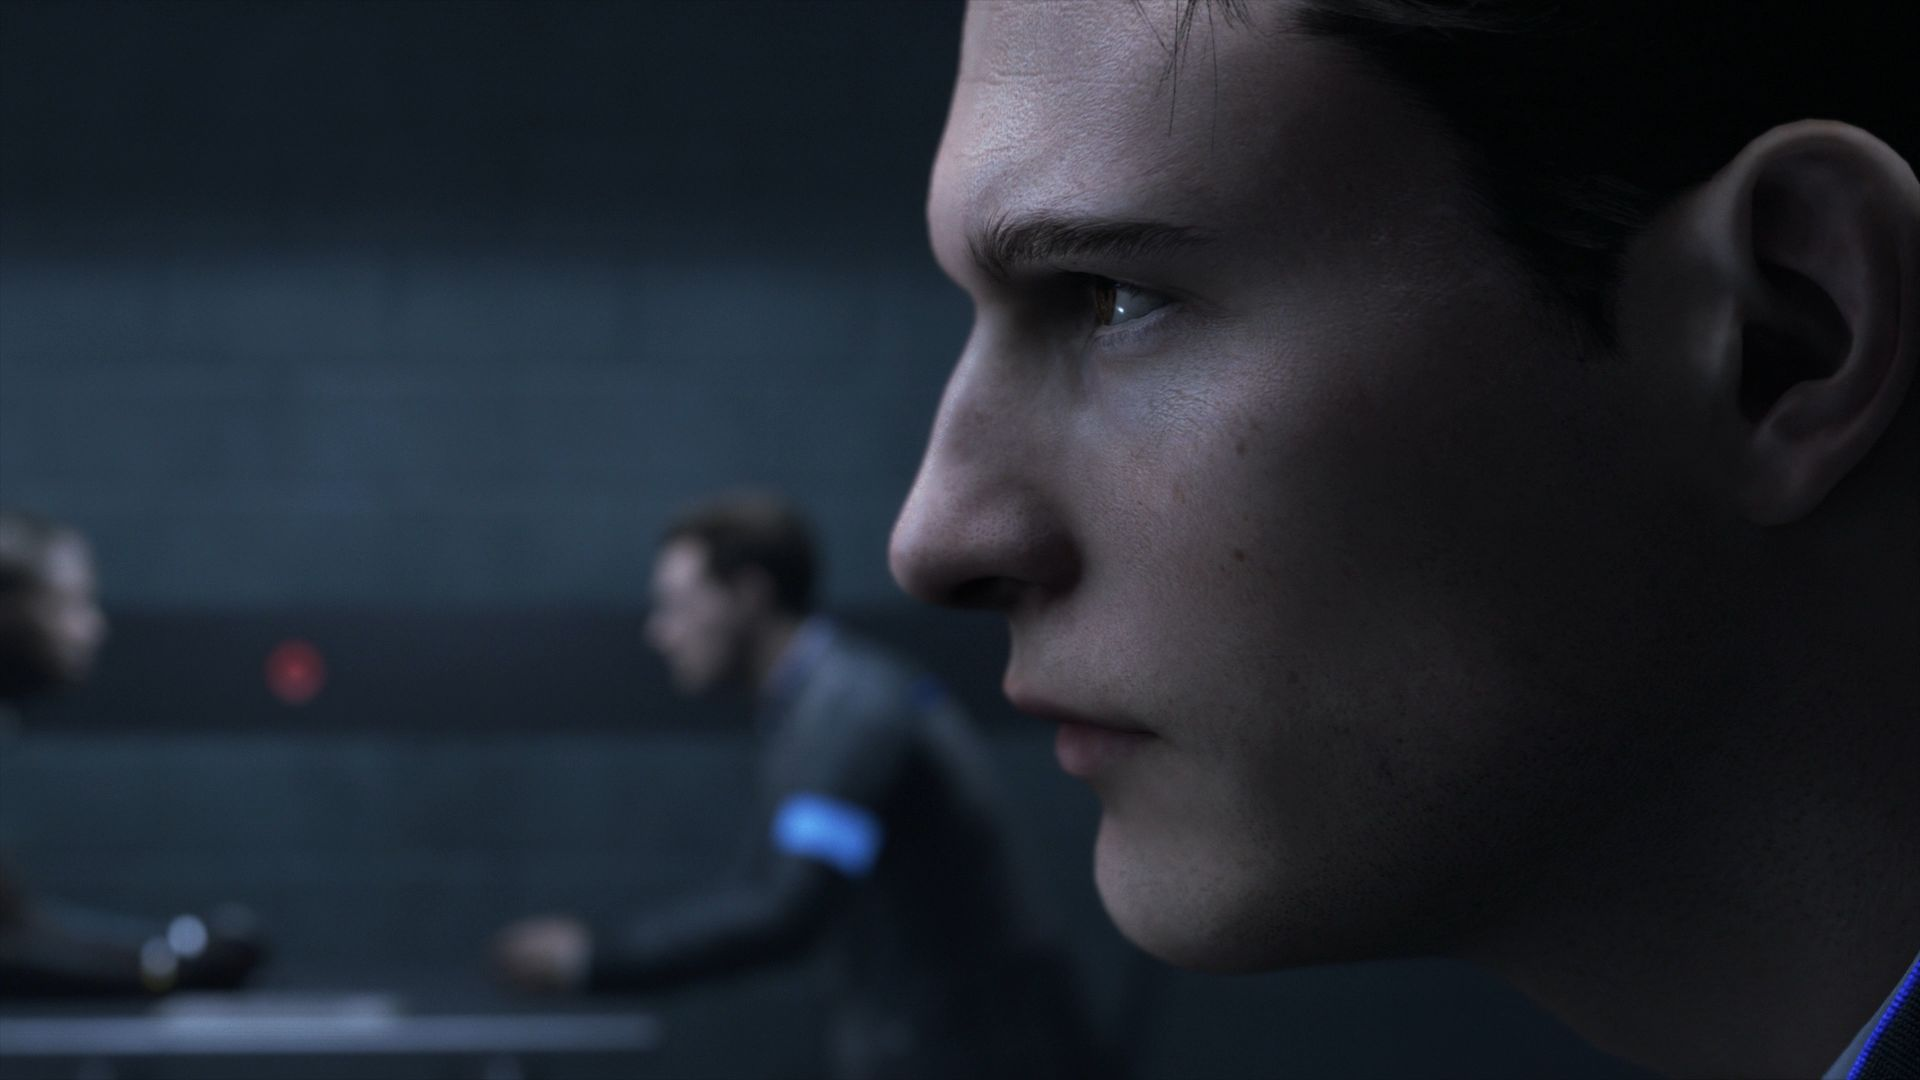 See Kara S Theme Performed Live Detroit Become Human S